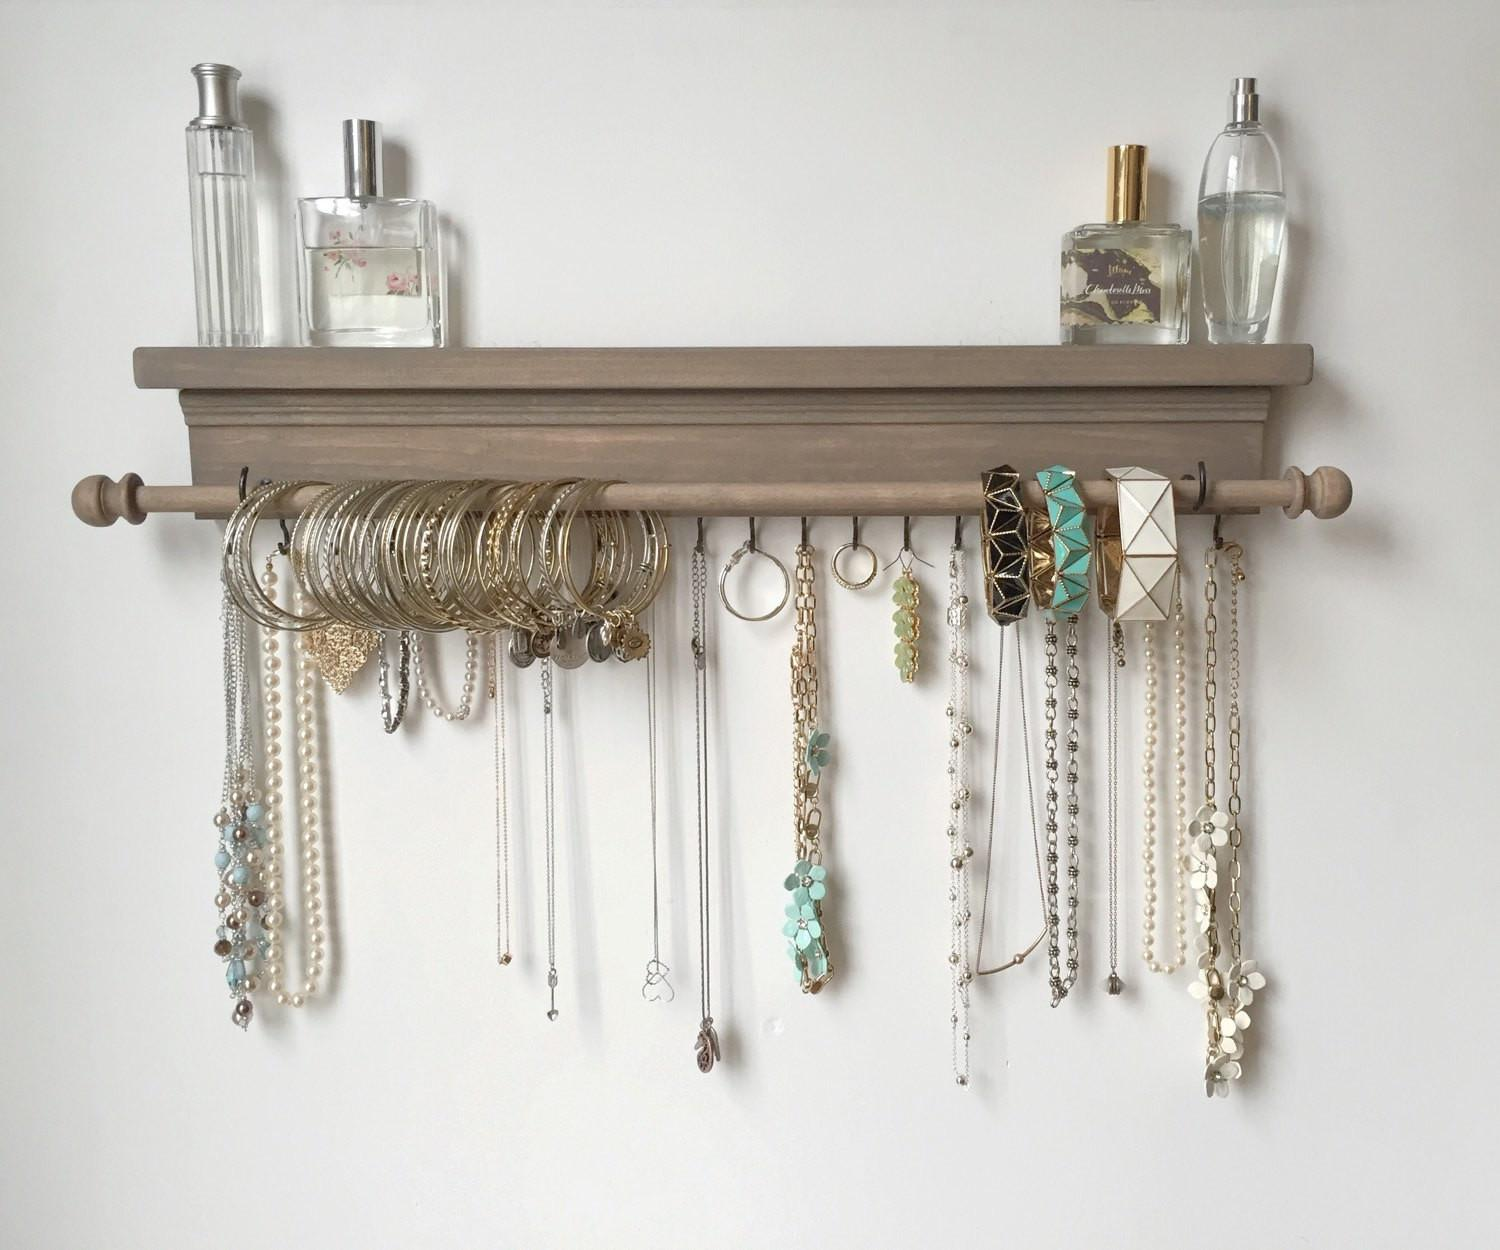 Jewelry Organizer Hanging Shelf Timberridgeshop